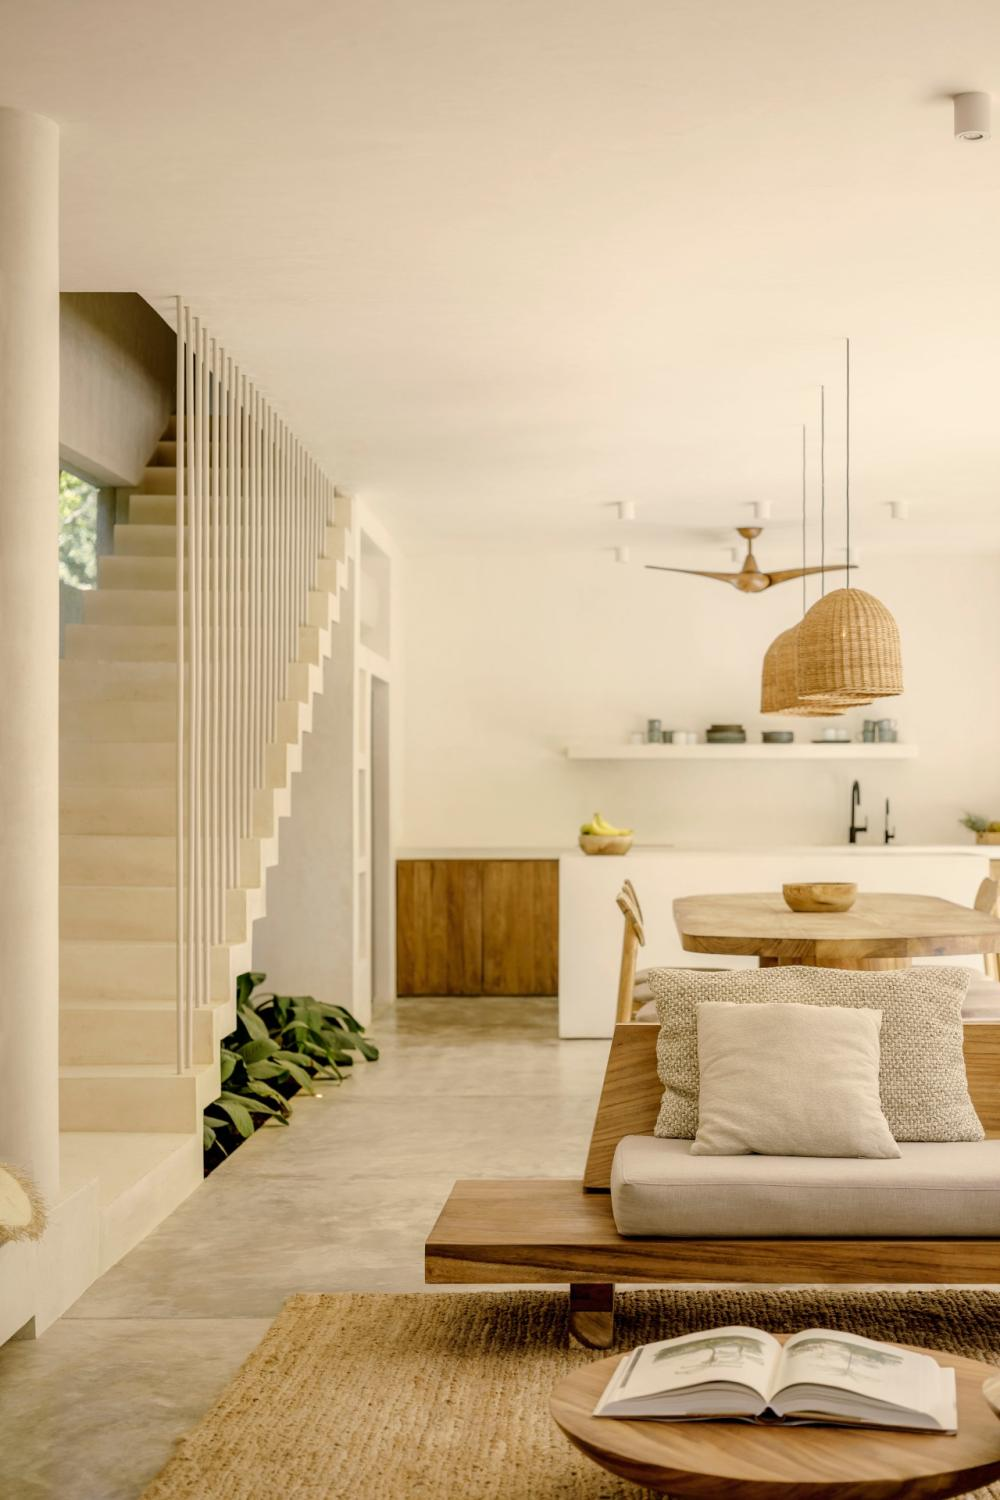 House tour: a peaceful, tropical holiday home in the trendy Mexican beach town of Tulum-7.jpg